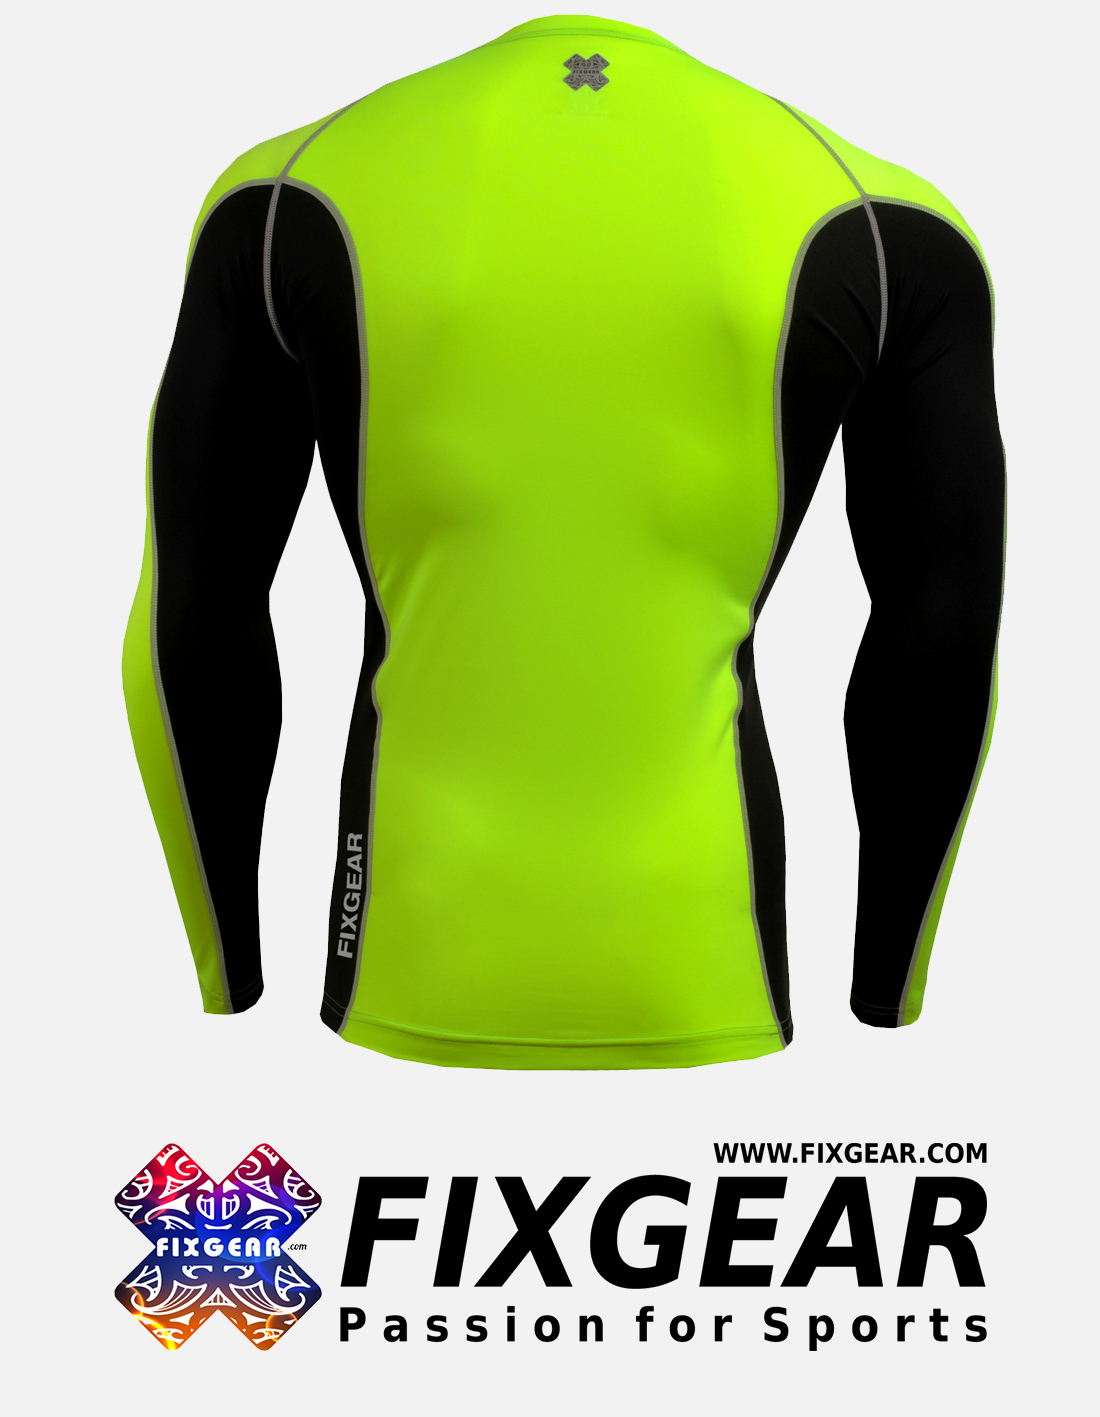 FIXGEAR FCTR-BGL Skin-tight Compression Base Layer Shirt